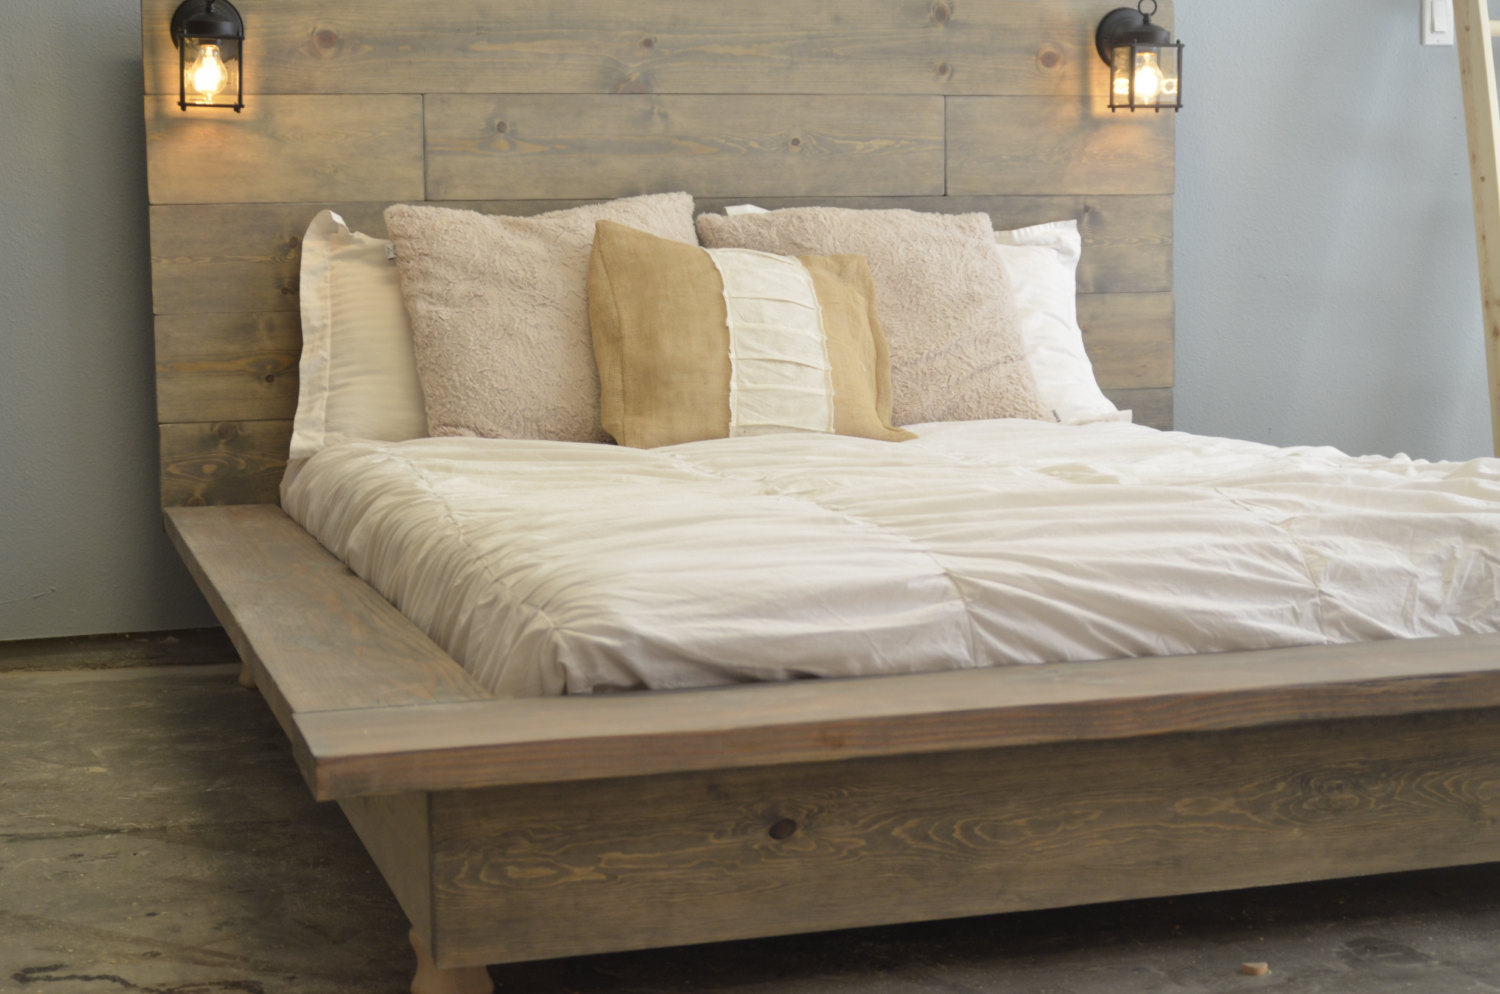 Picture of: Wood Platform Bed With Storage and Lamps